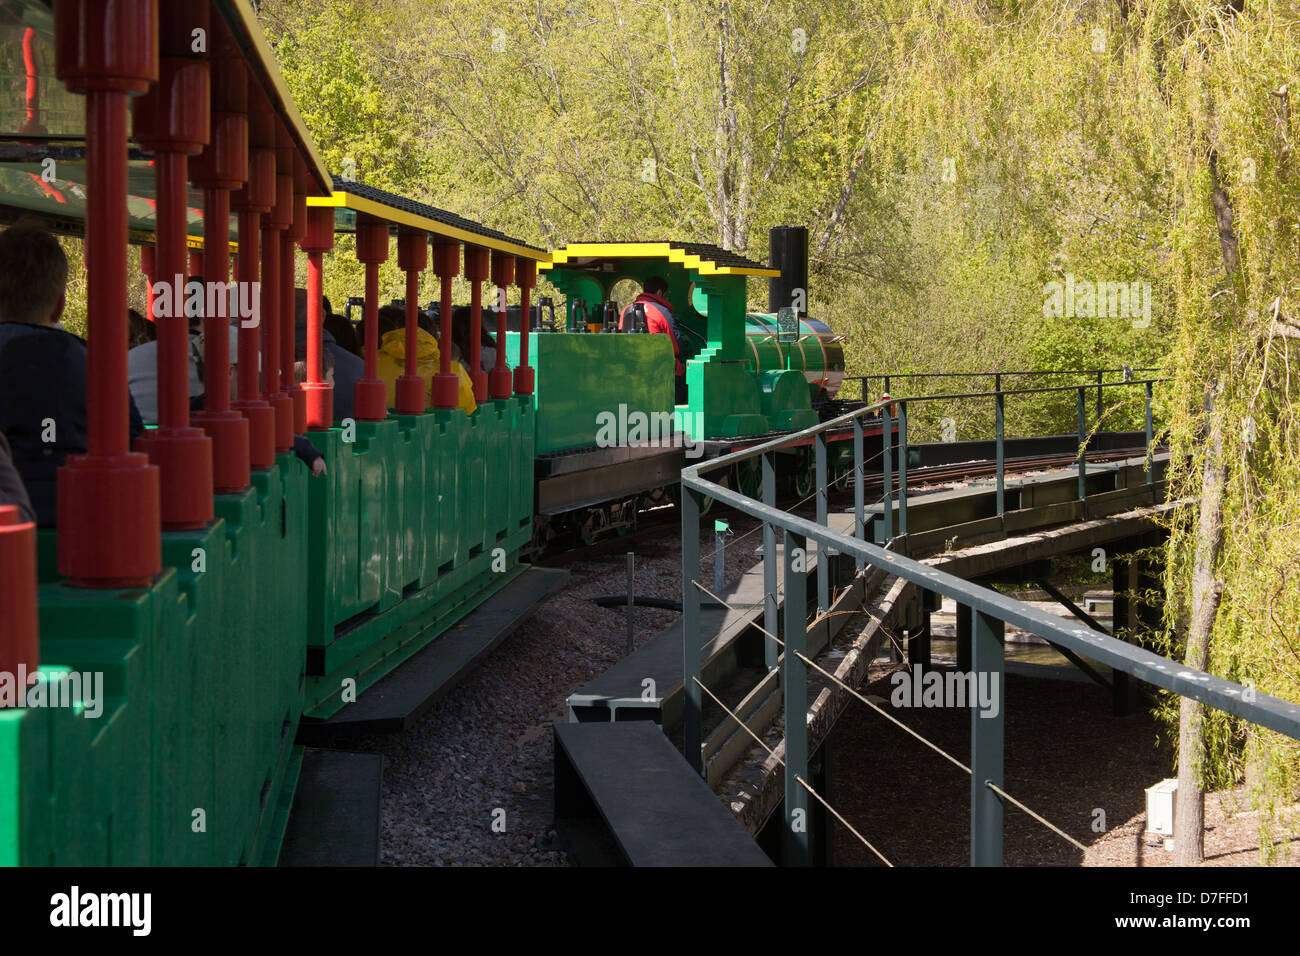 Orient Expedition steam train ride at Legoland Windsor, England Stock Photo